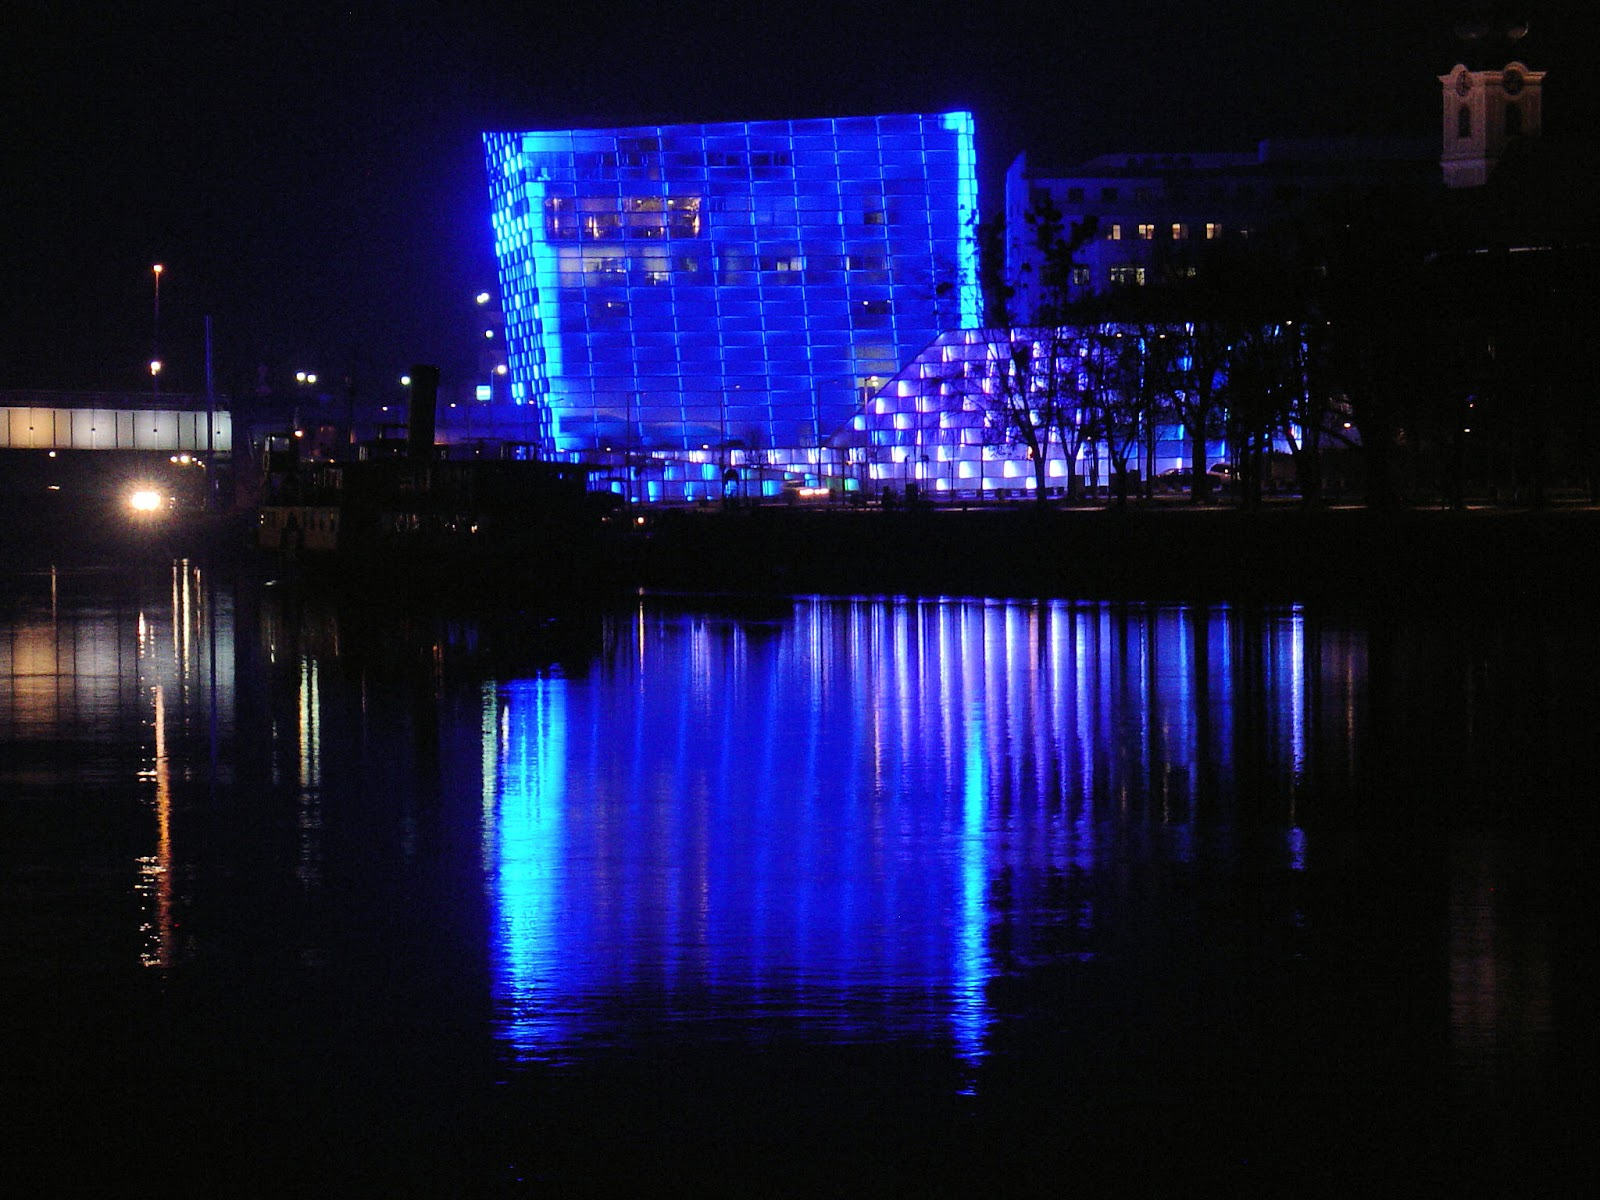 The Institute of Computer Graphics in Linz, Austria, was a dazzling display of neon light.